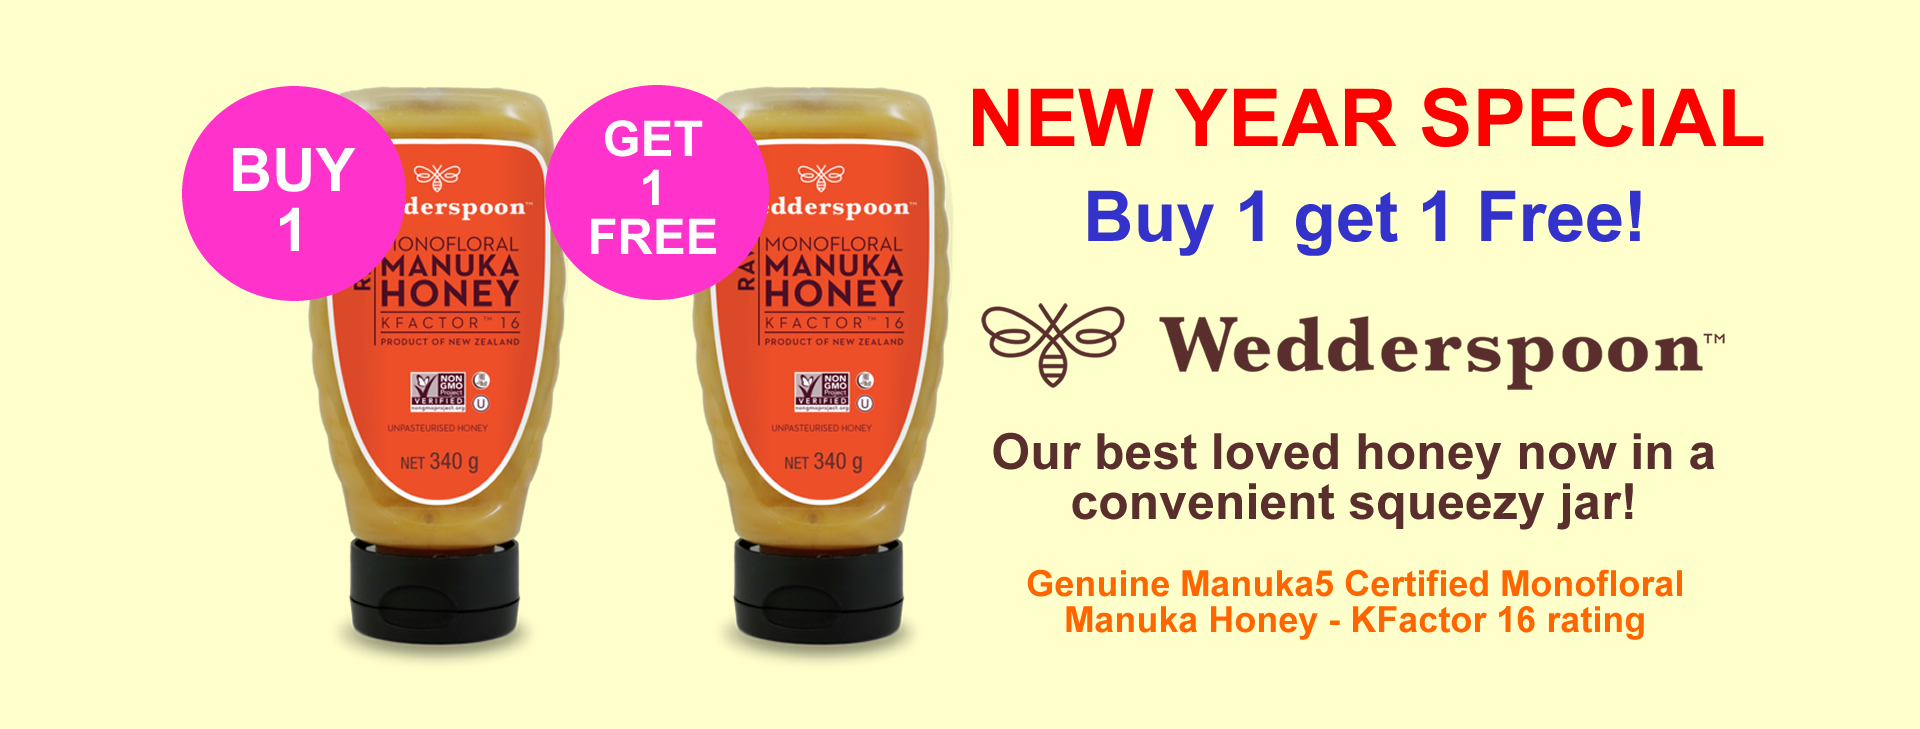 Wedderspoon Manuka Honey Buy 1 Get 1 free! KFactor 16 our strongest Manuka Honey is available for a limited time on a buy 1 get 1 free